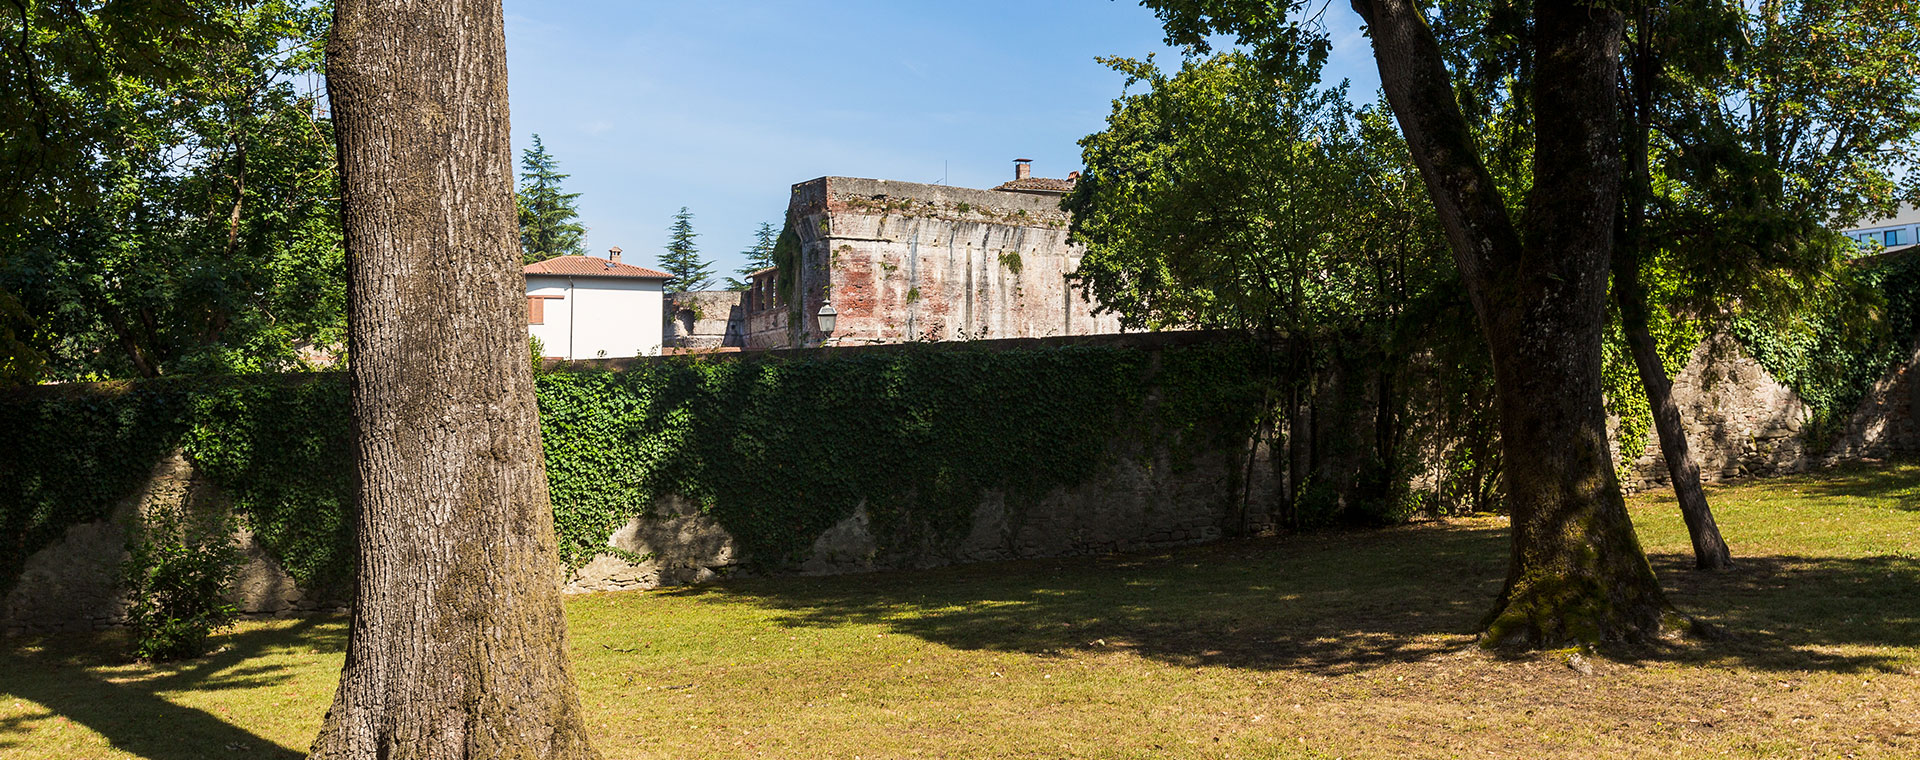 Wonderful villa from Tuscany: ancient and historical property for sale